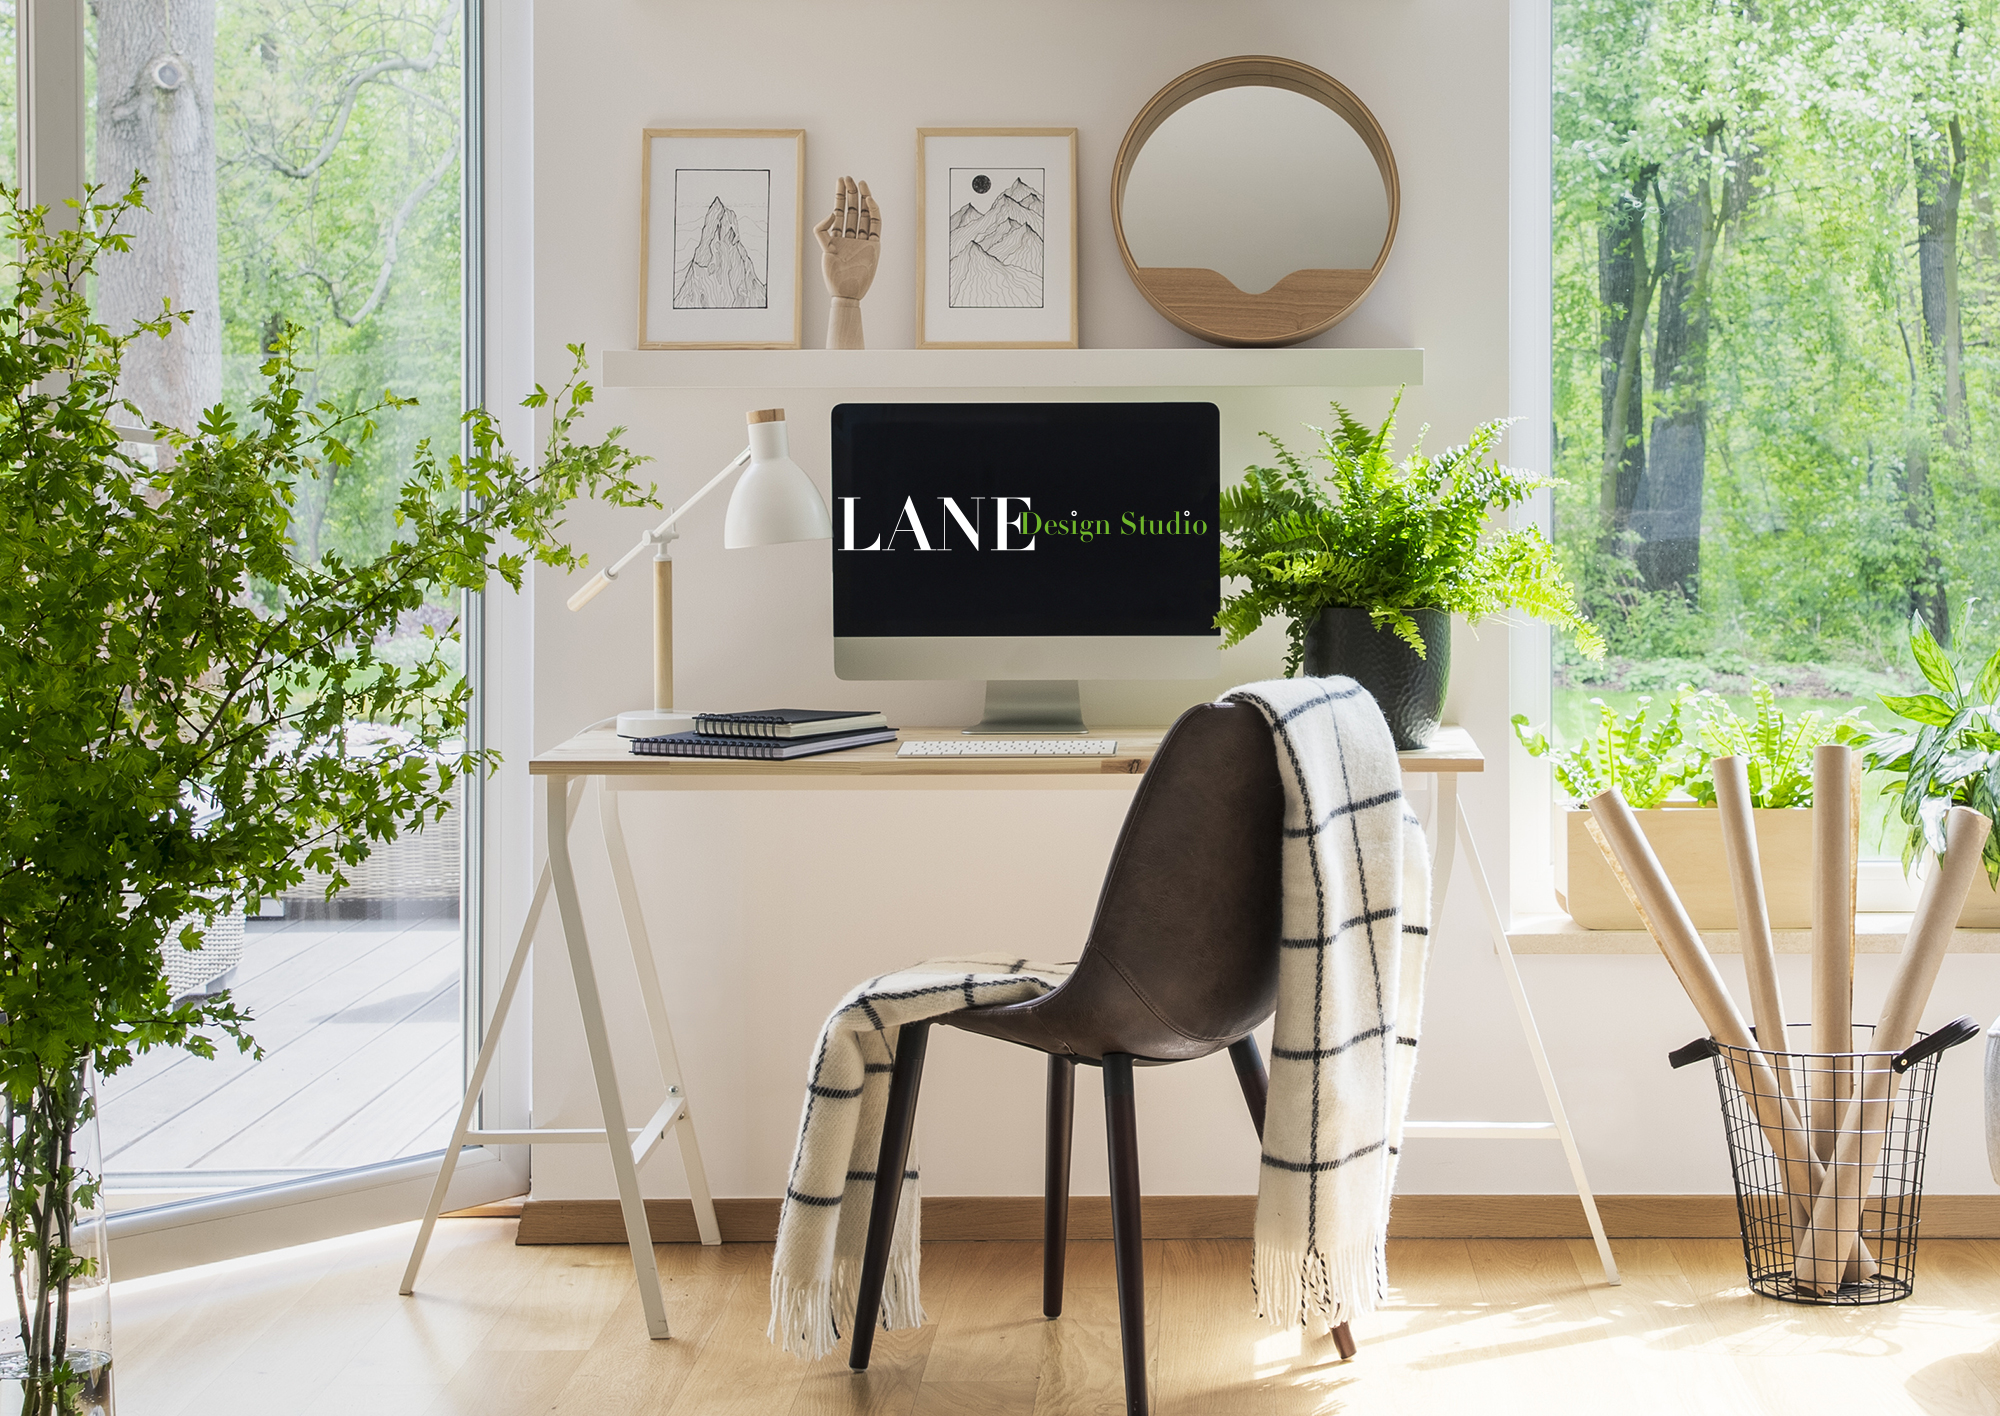 Lane Design Studio